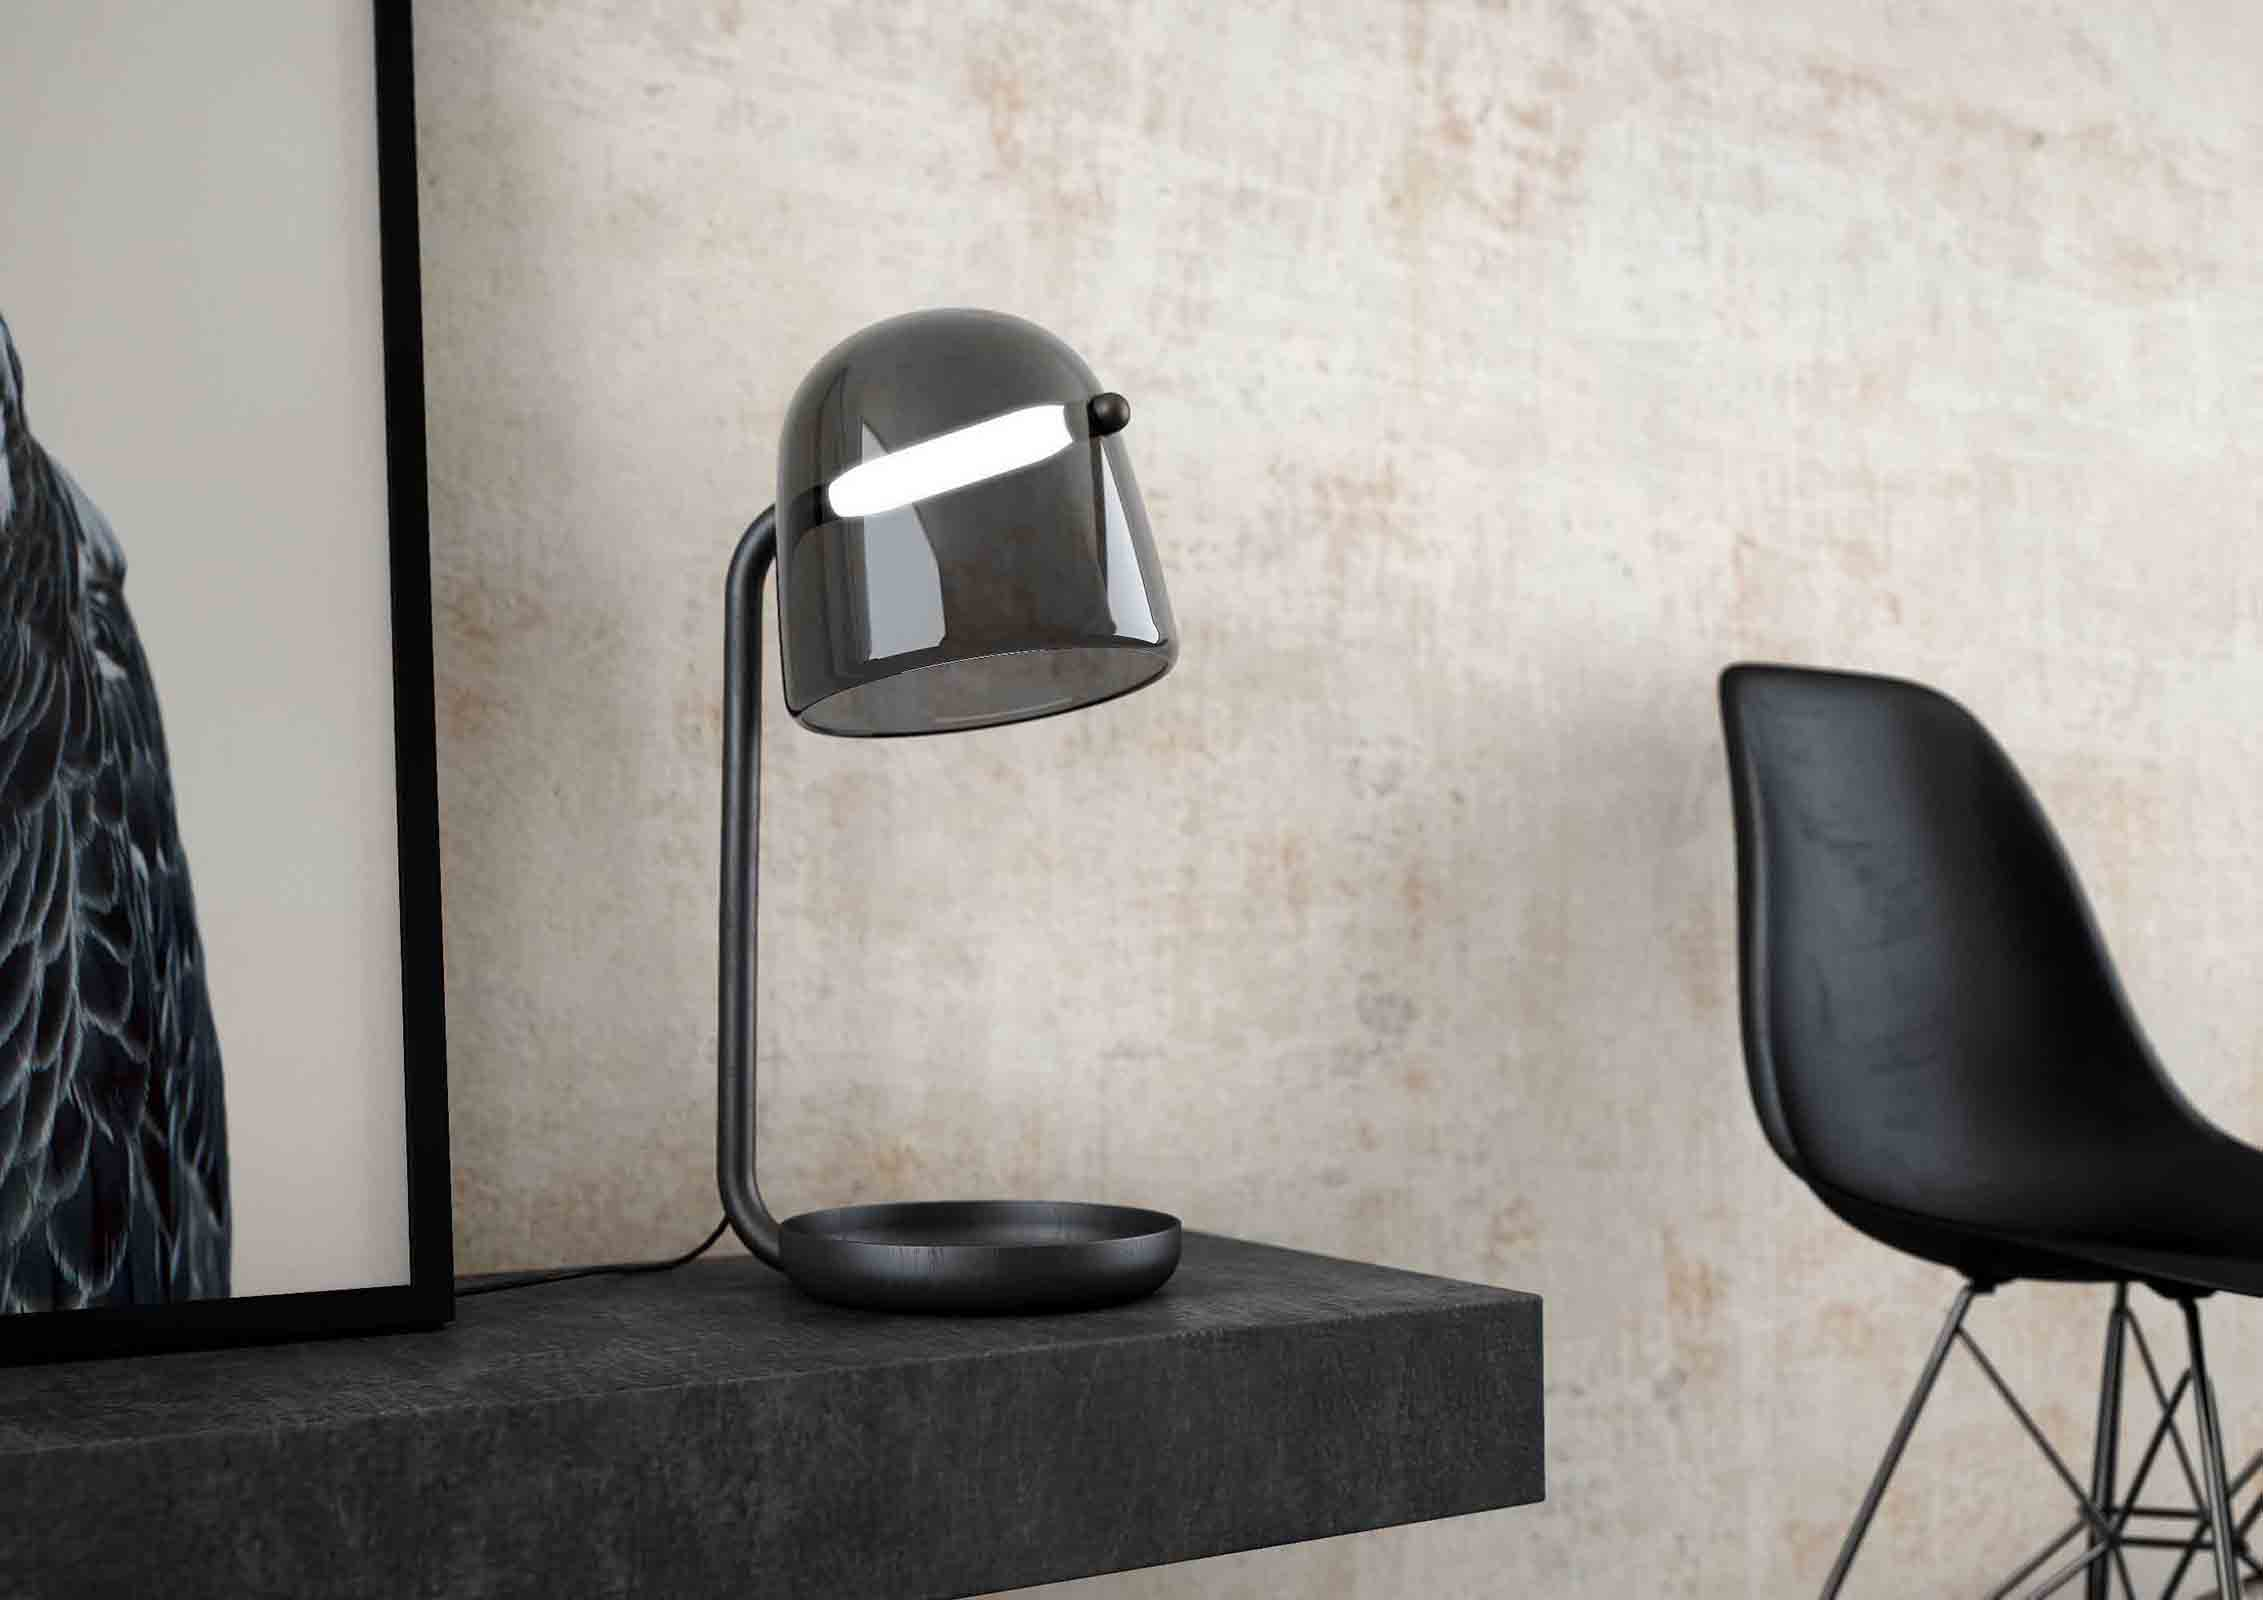 'Mona' table lamp, designed by Lucie Koldova for Brokis